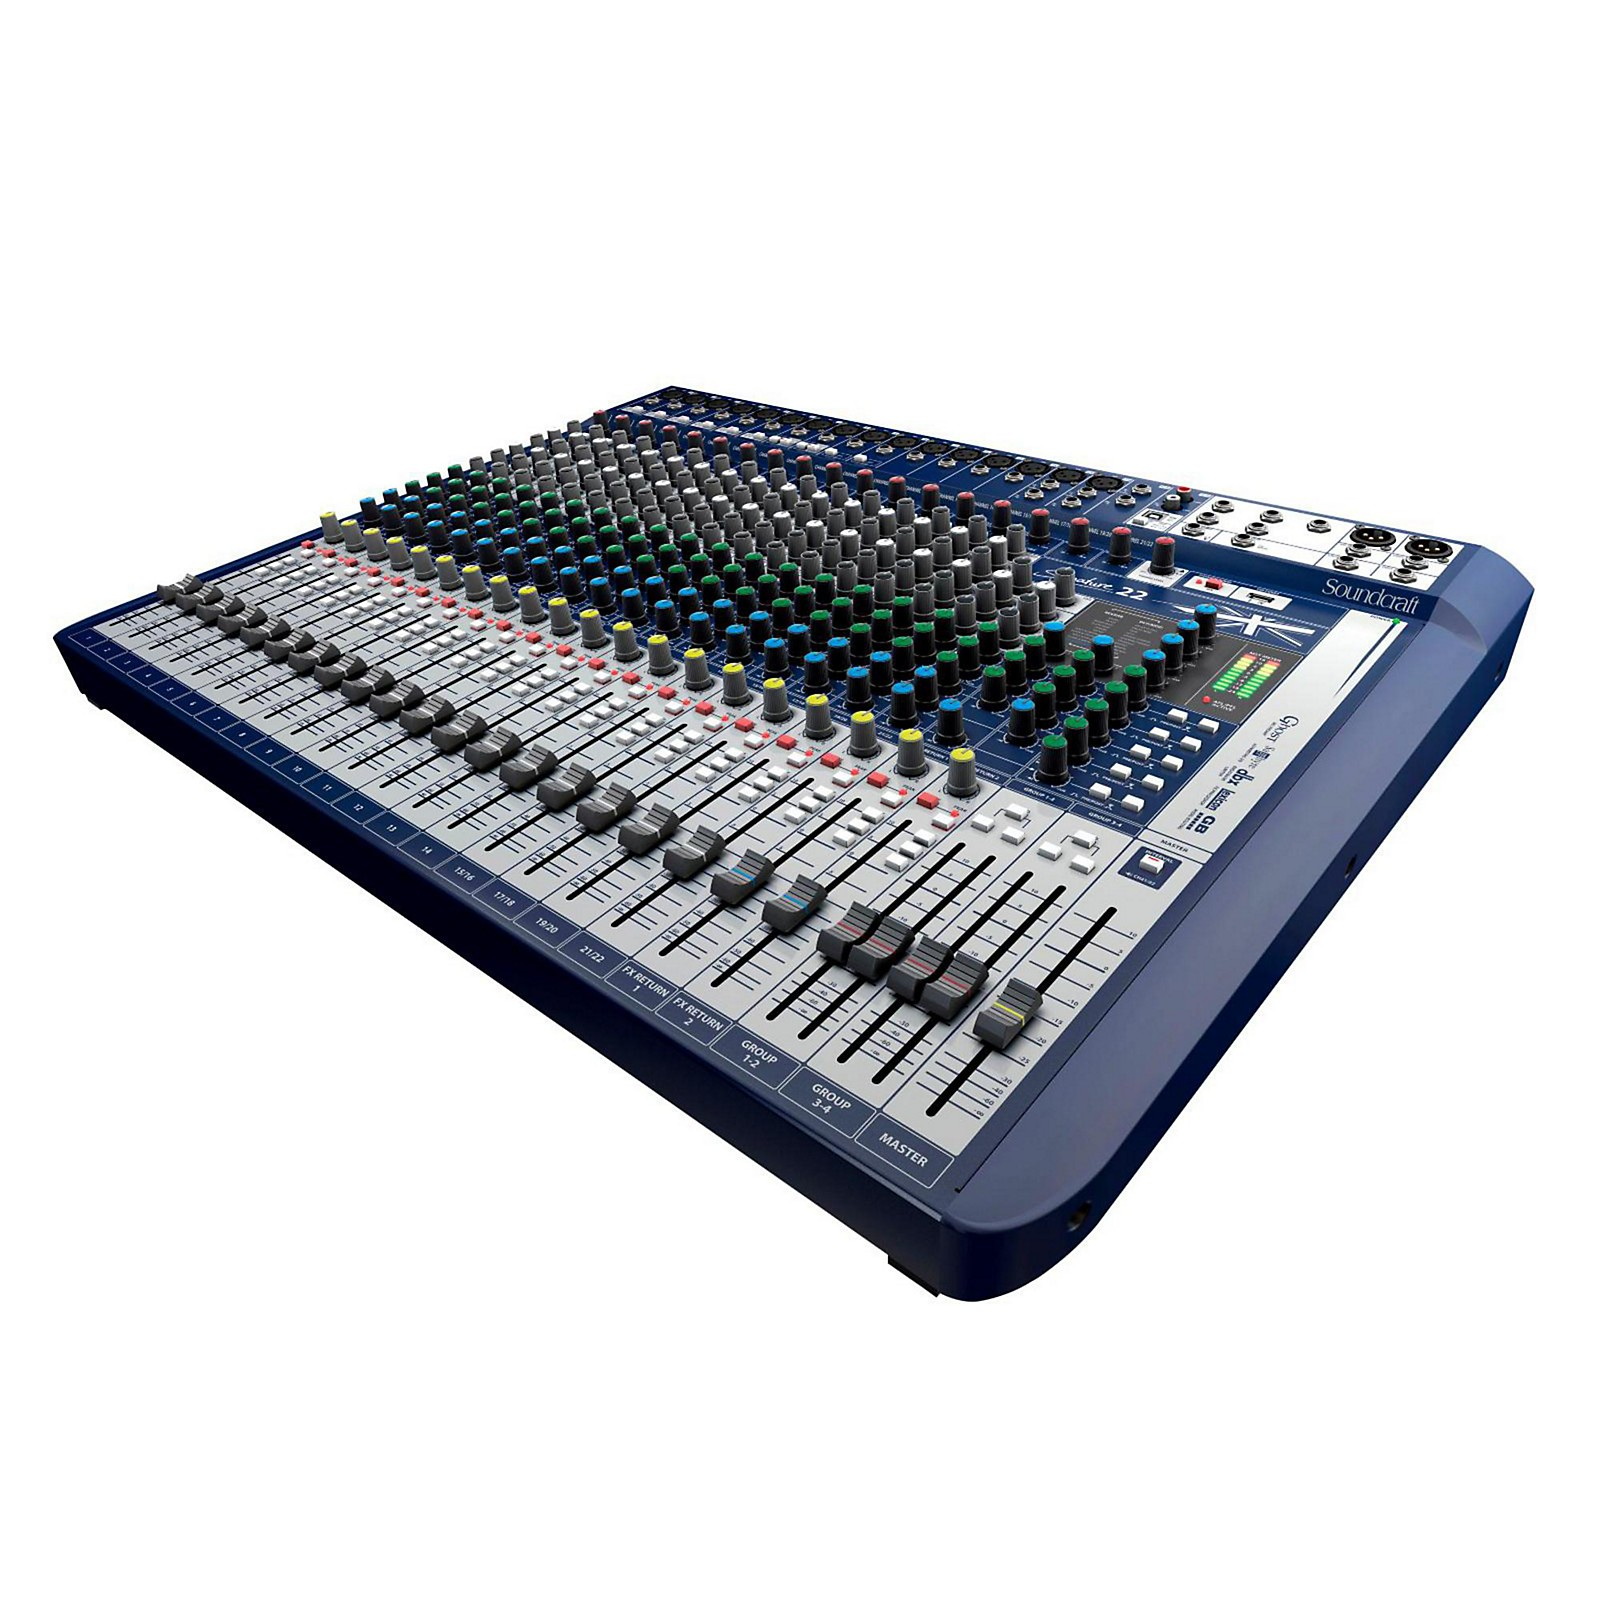 Soundcraft Signature 22 22-Input Analog Mixer with Effects